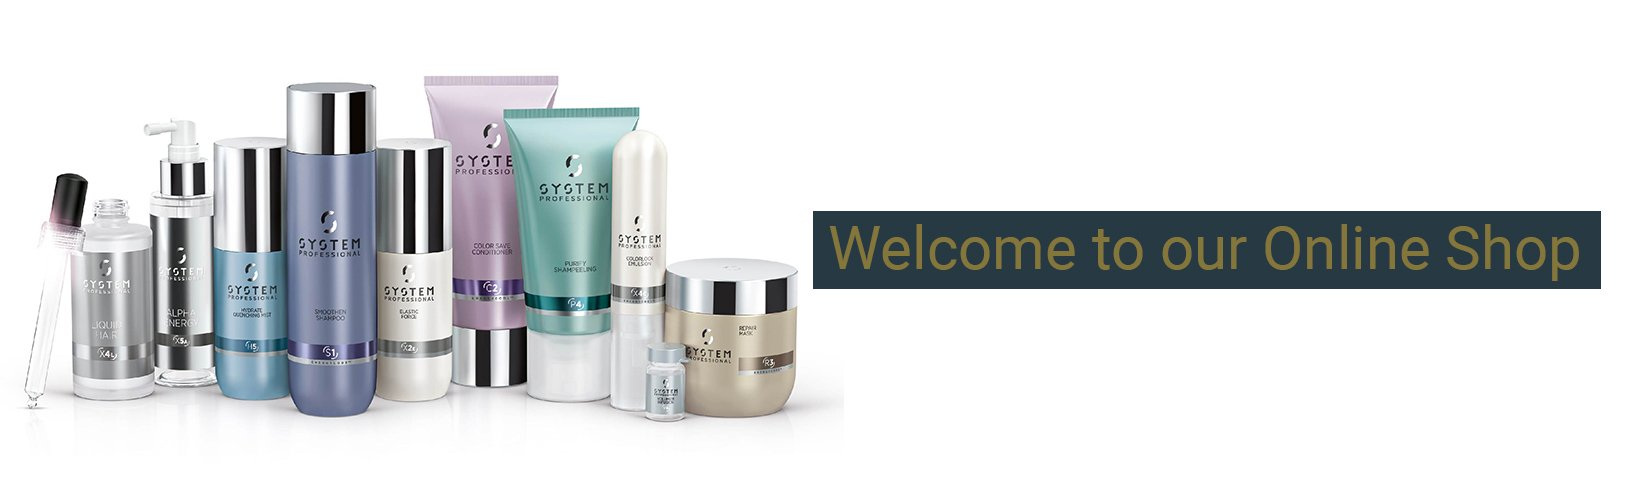 Shop online at west with style - luxury hair care products